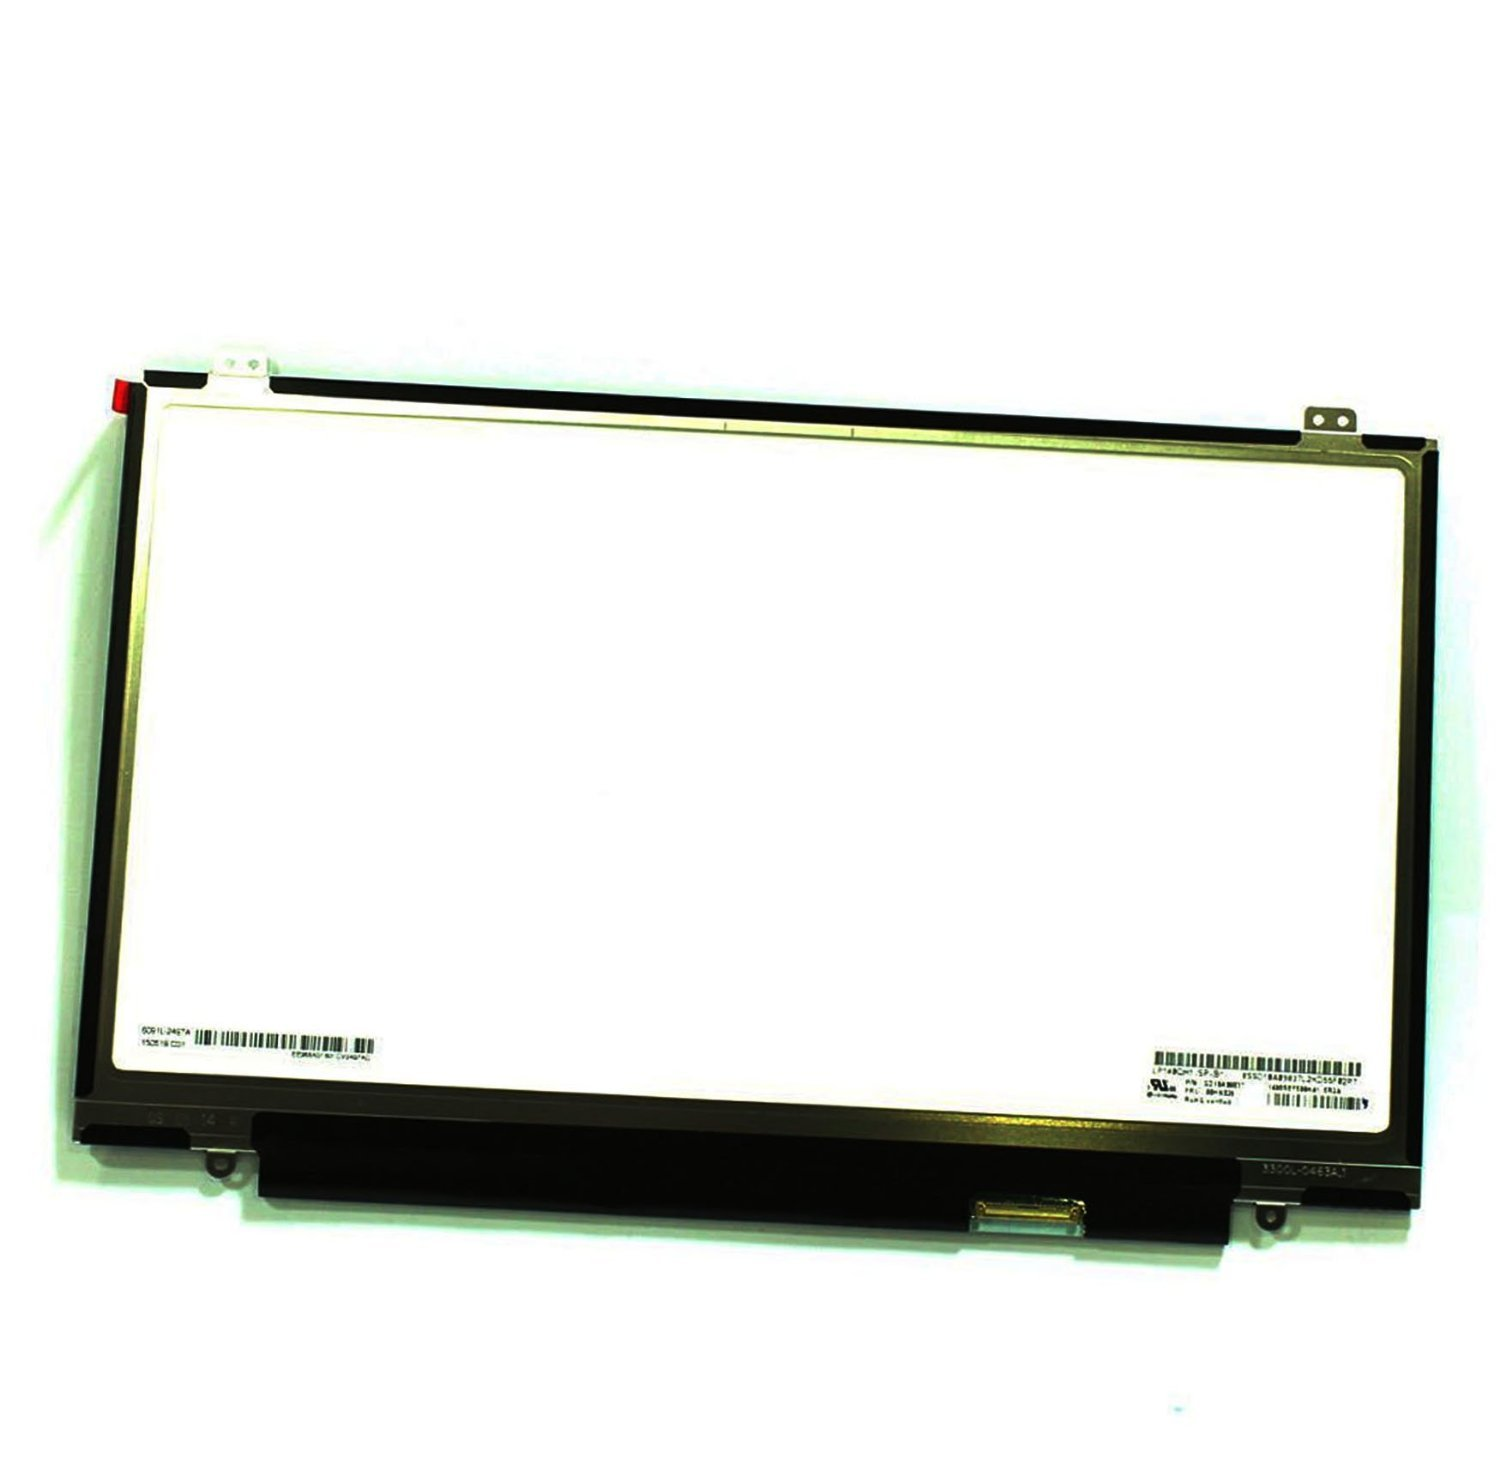 BRIGHTFOCAL New Screen for Lenovo Ideapad 330-15IGM 81D1 15.6 Full-HD FHD 1920 x 1080 IPS High-End LED Replacement LCD Screen Display